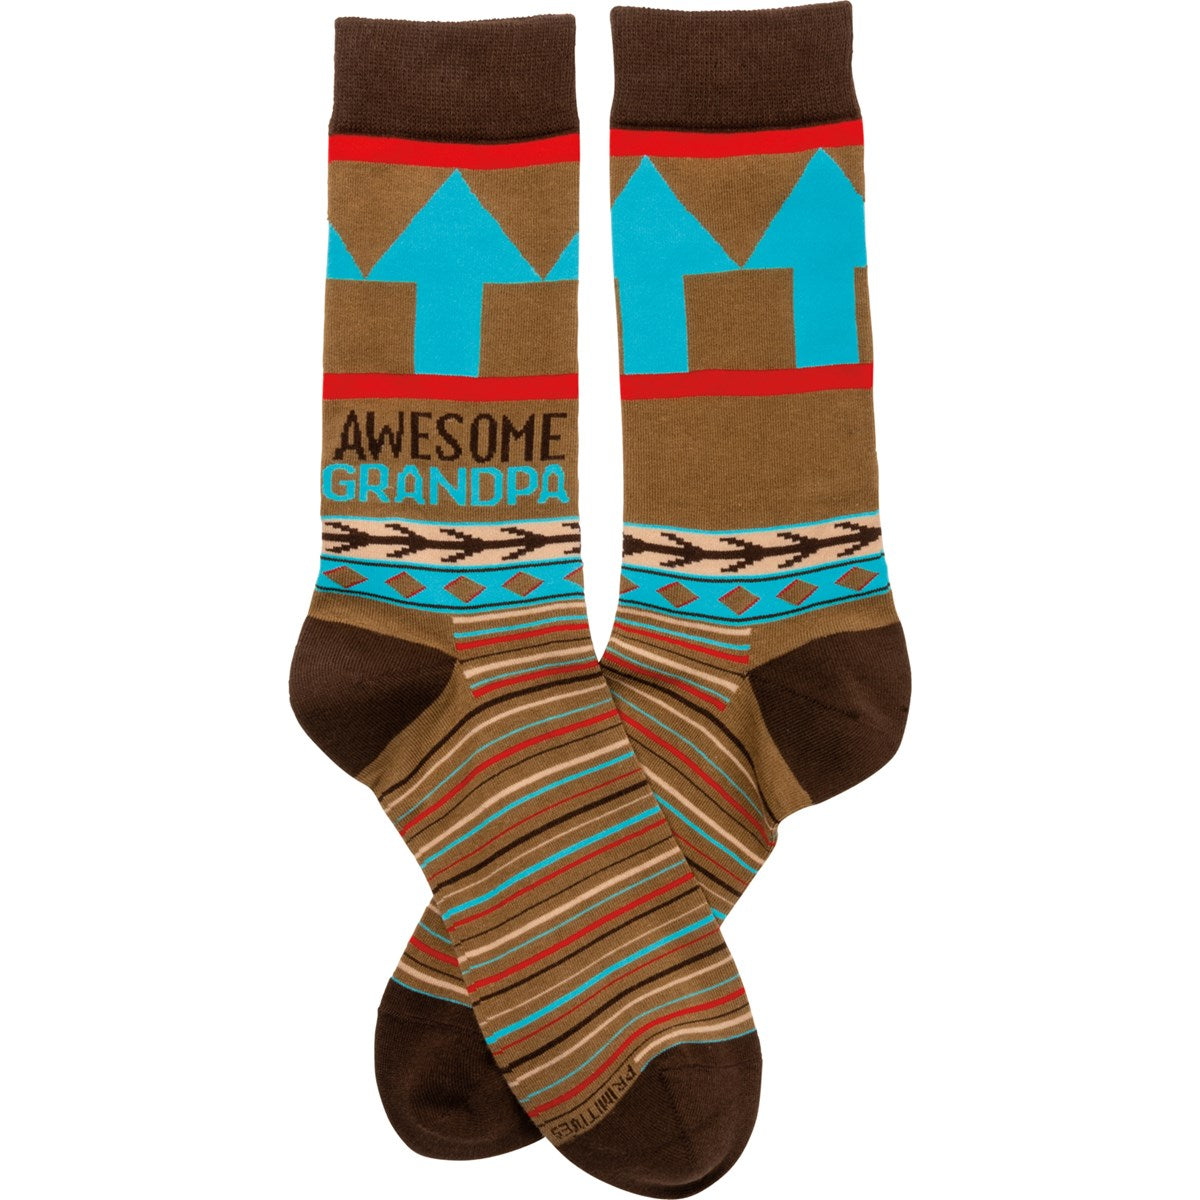 Socks - Awesome Grandpa